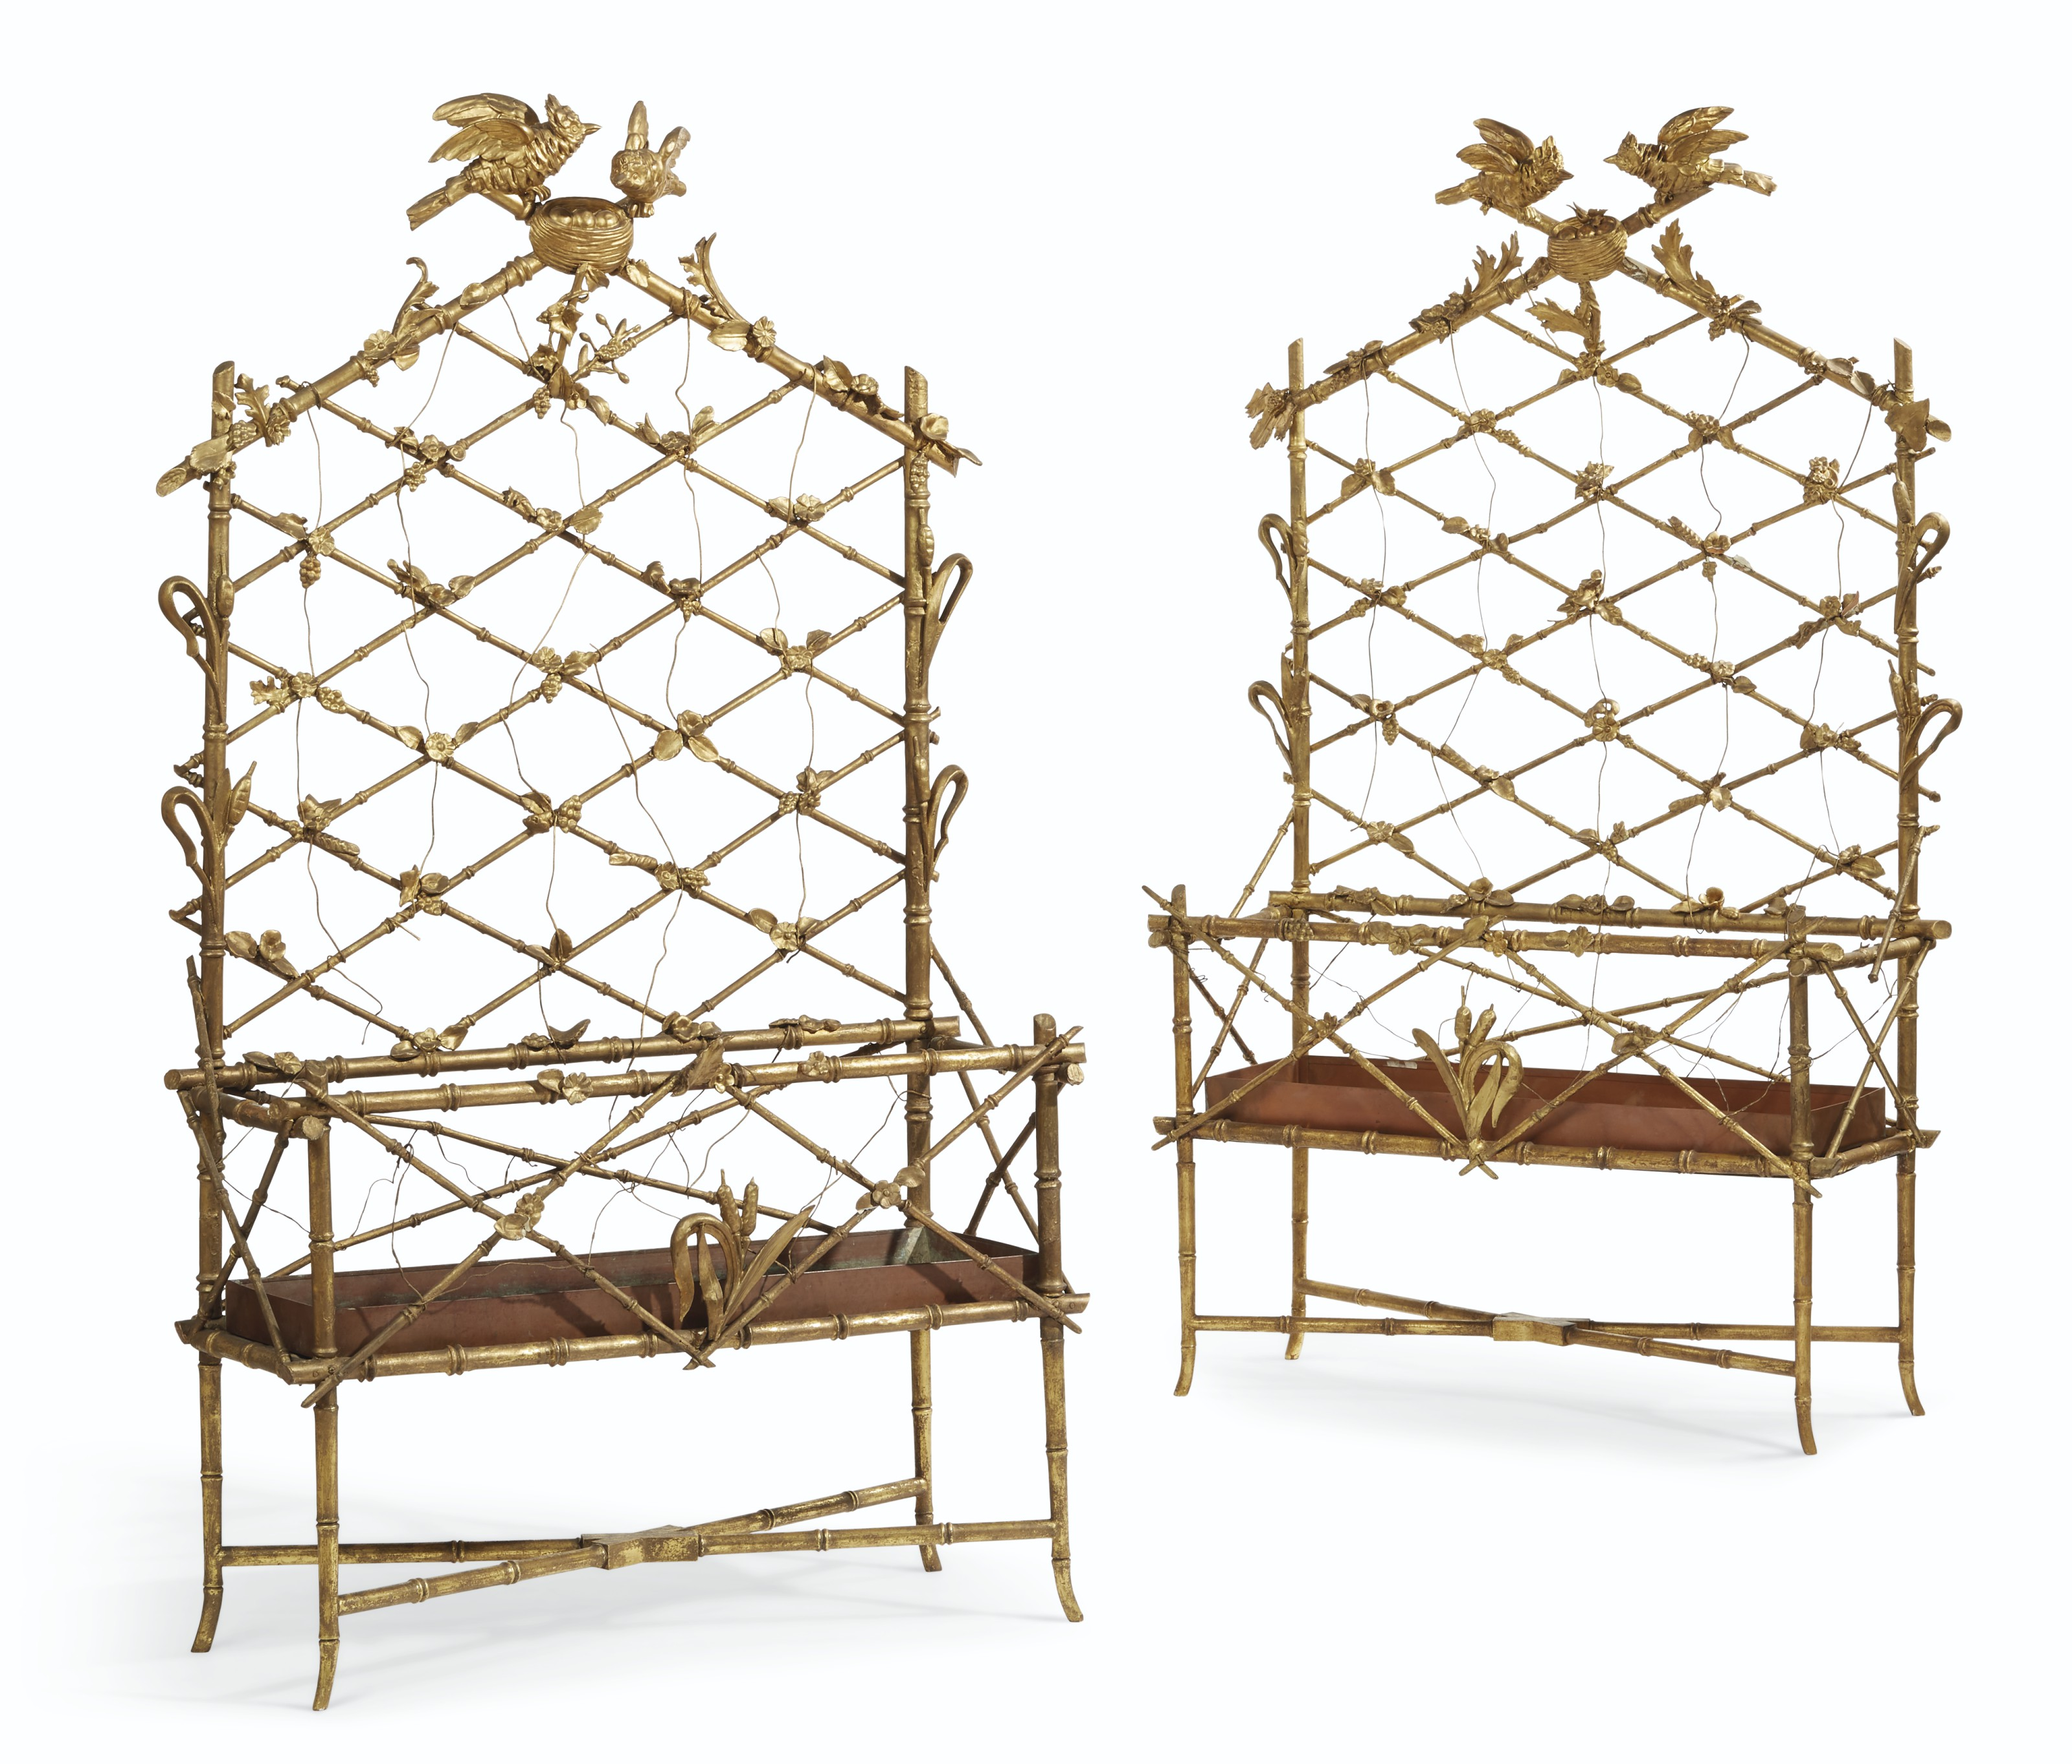 A PAIR OF LATE VICTORIAN GILTWOOD JARDINIERES